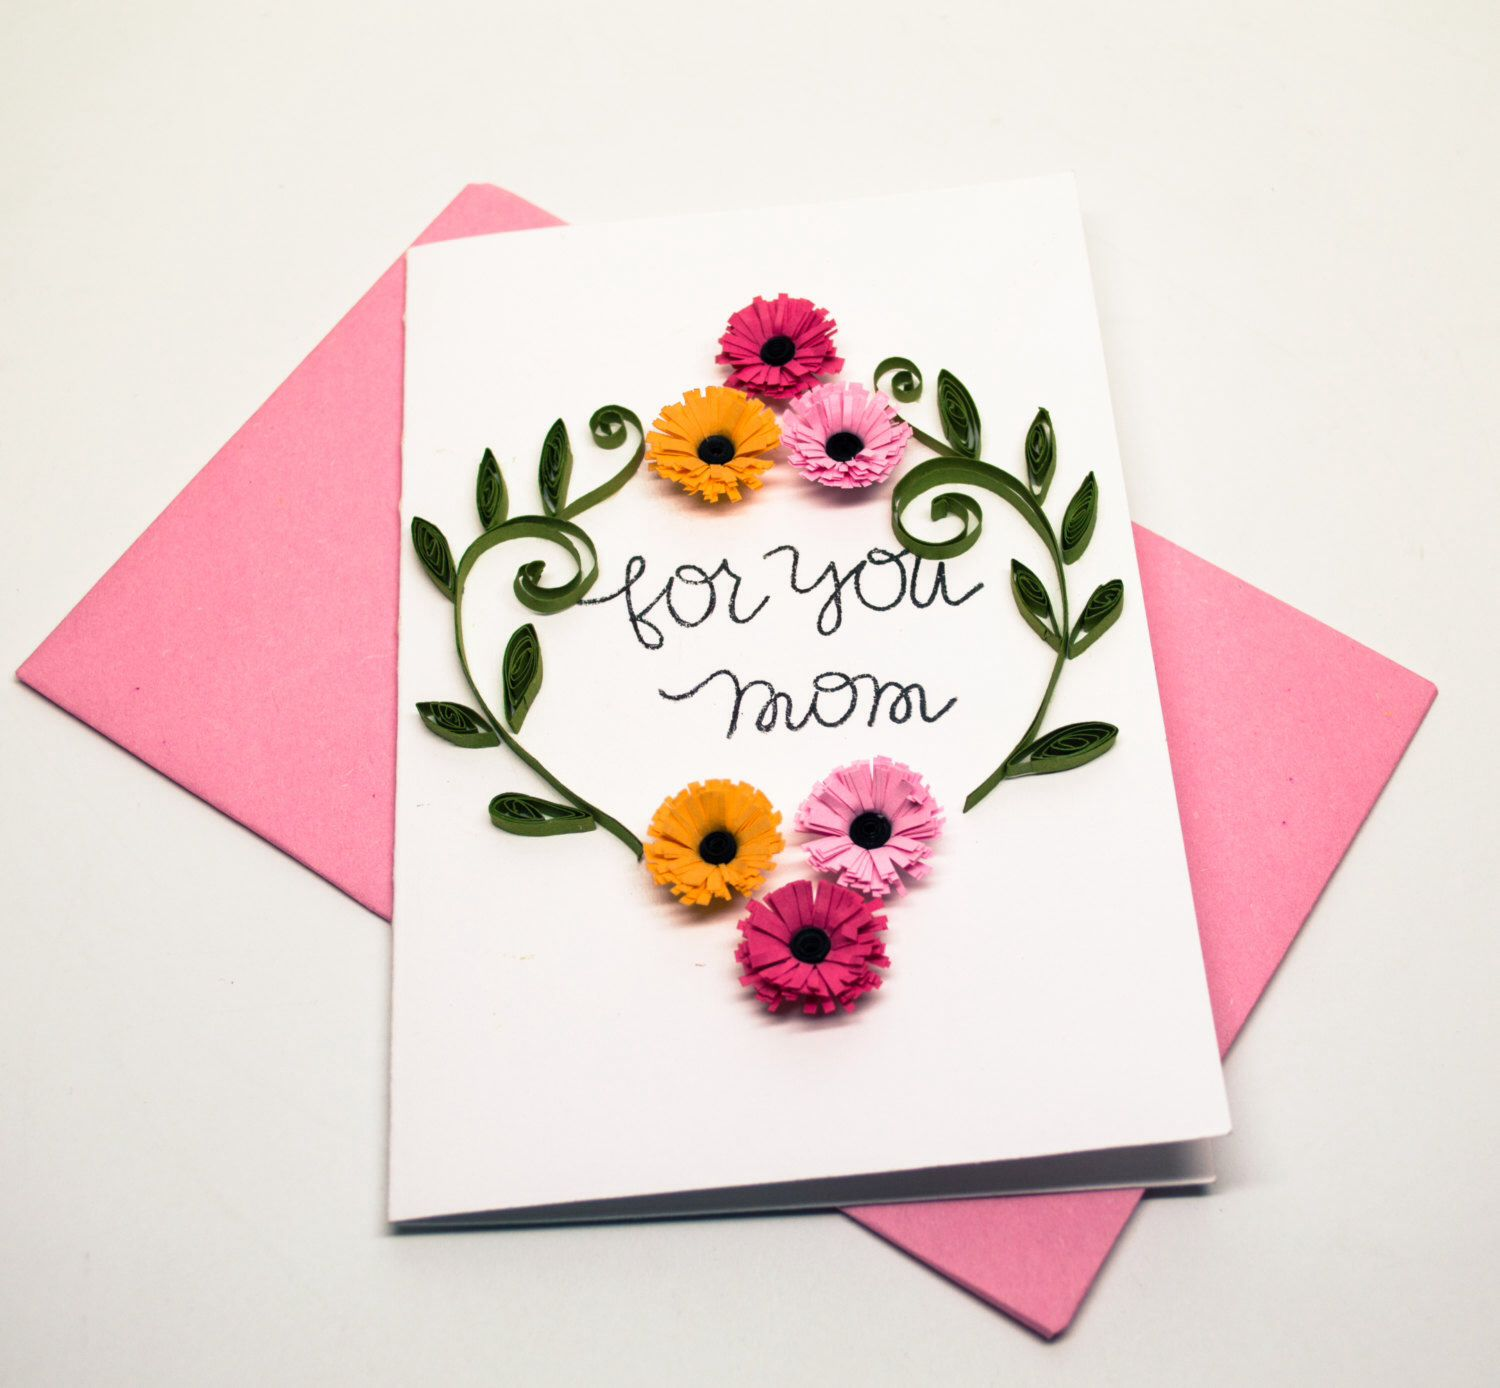 Mother's day card for wonderful mother. Paper flowers in